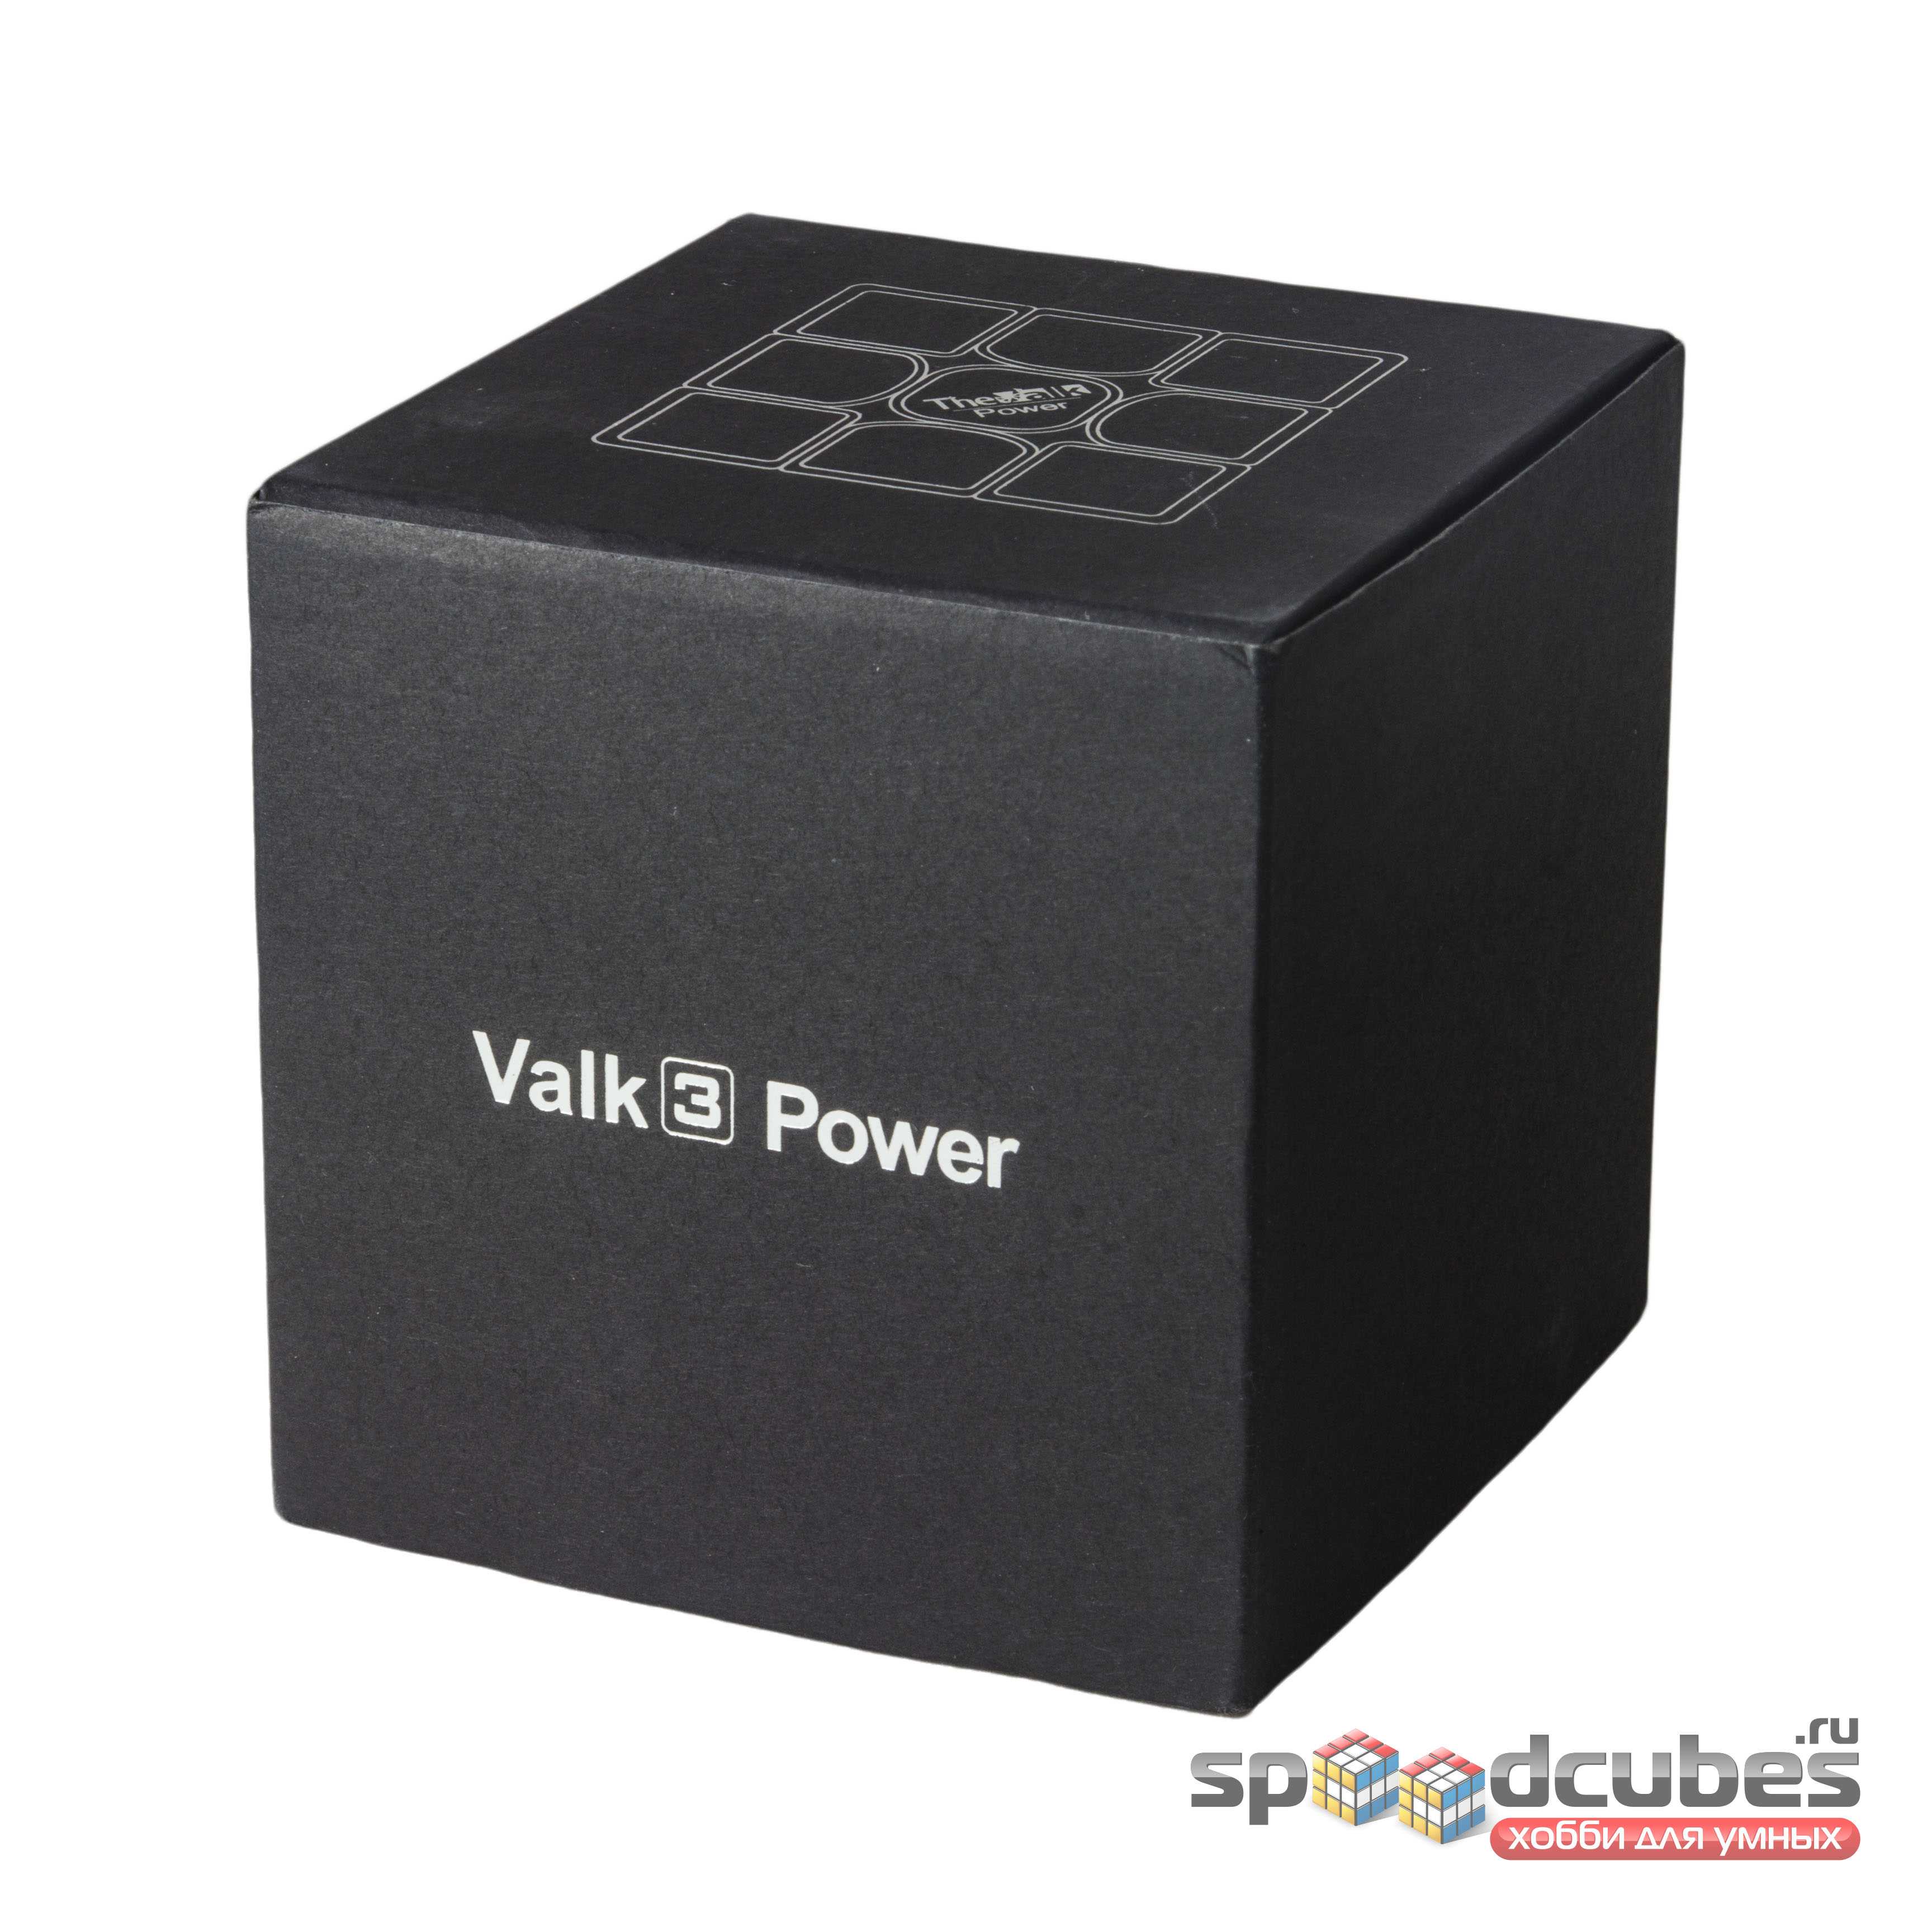 Qiyi Mofangge The Valk 3 Power Color 1